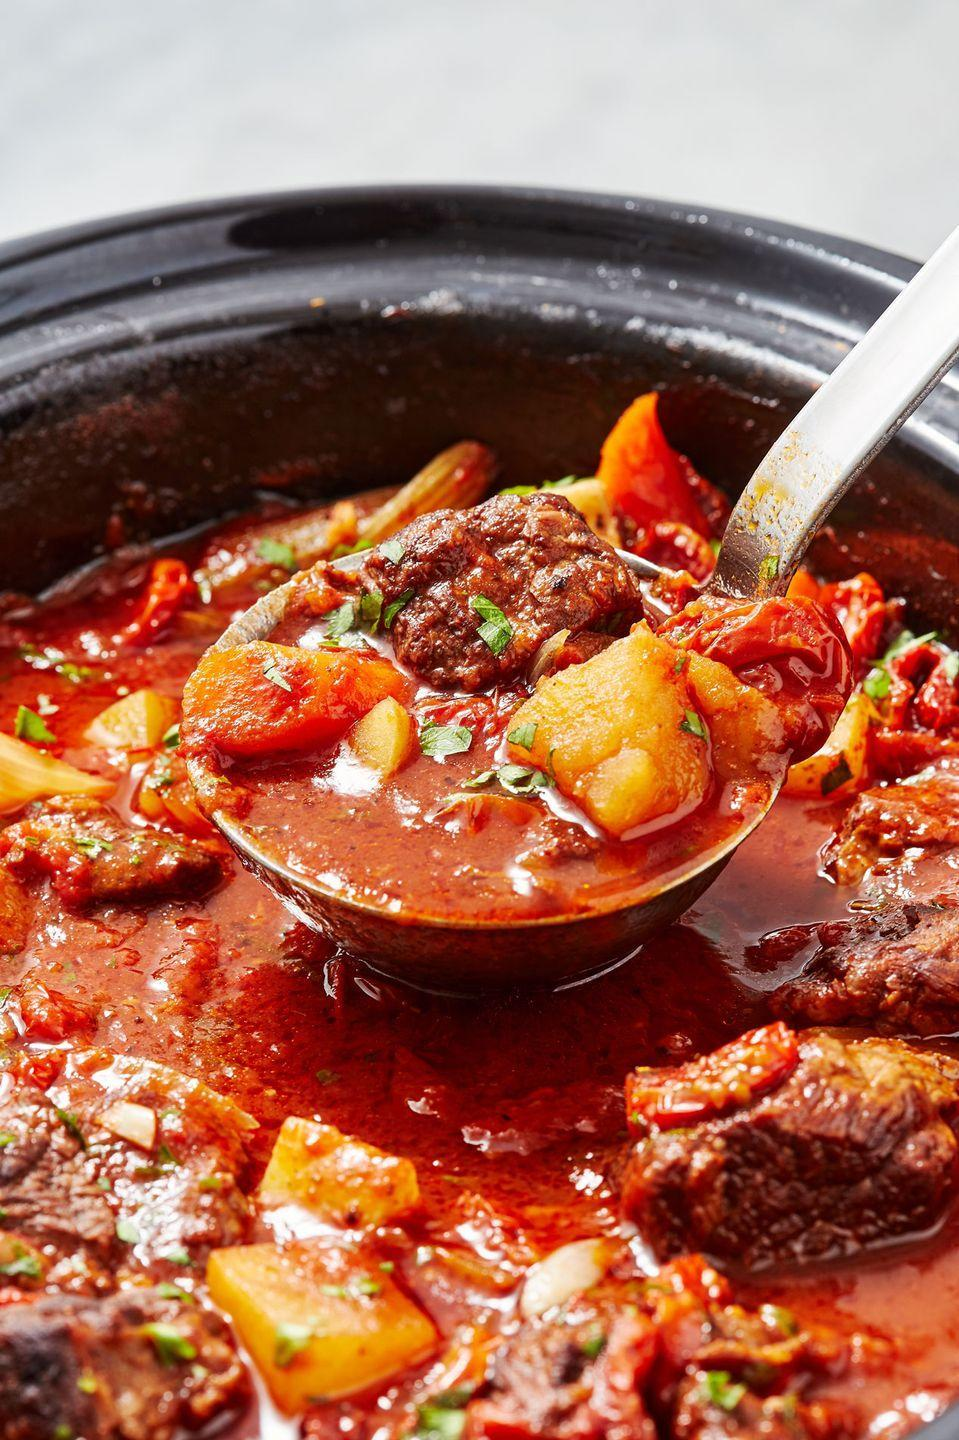 """<p>Pro tip: Searing the beef helps create the most tender piece of meat.</p><p>Get the recipe from <a href=""""https://www.delish.com/cooking/recipe-ideas/recipes/a49563/slow-cooker-red-wine-beef-stew-recipe/"""" rel=""""nofollow noopener"""" target=""""_blank"""" data-ylk=""""slk:Delish"""" class=""""link rapid-noclick-resp"""">Delish</a>.</p>"""